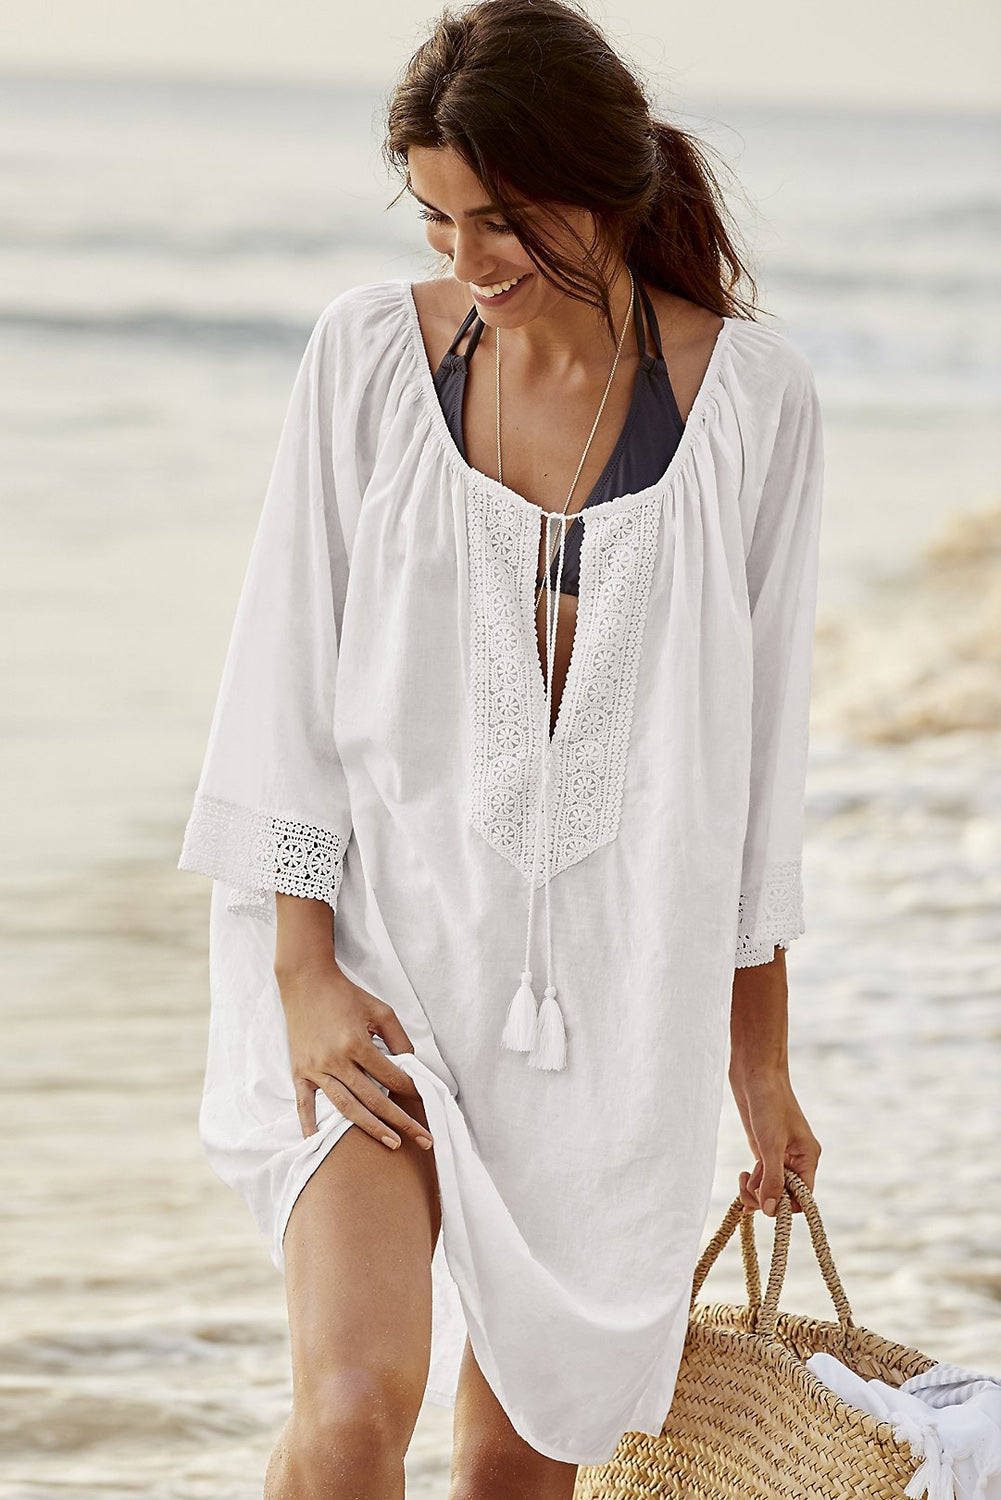 b4c6f3deb4 Sexy White Bohemian Lace Tassel Tie Manual Cotton Beachwear – SEXY  AFFORDABLE CLOTHING